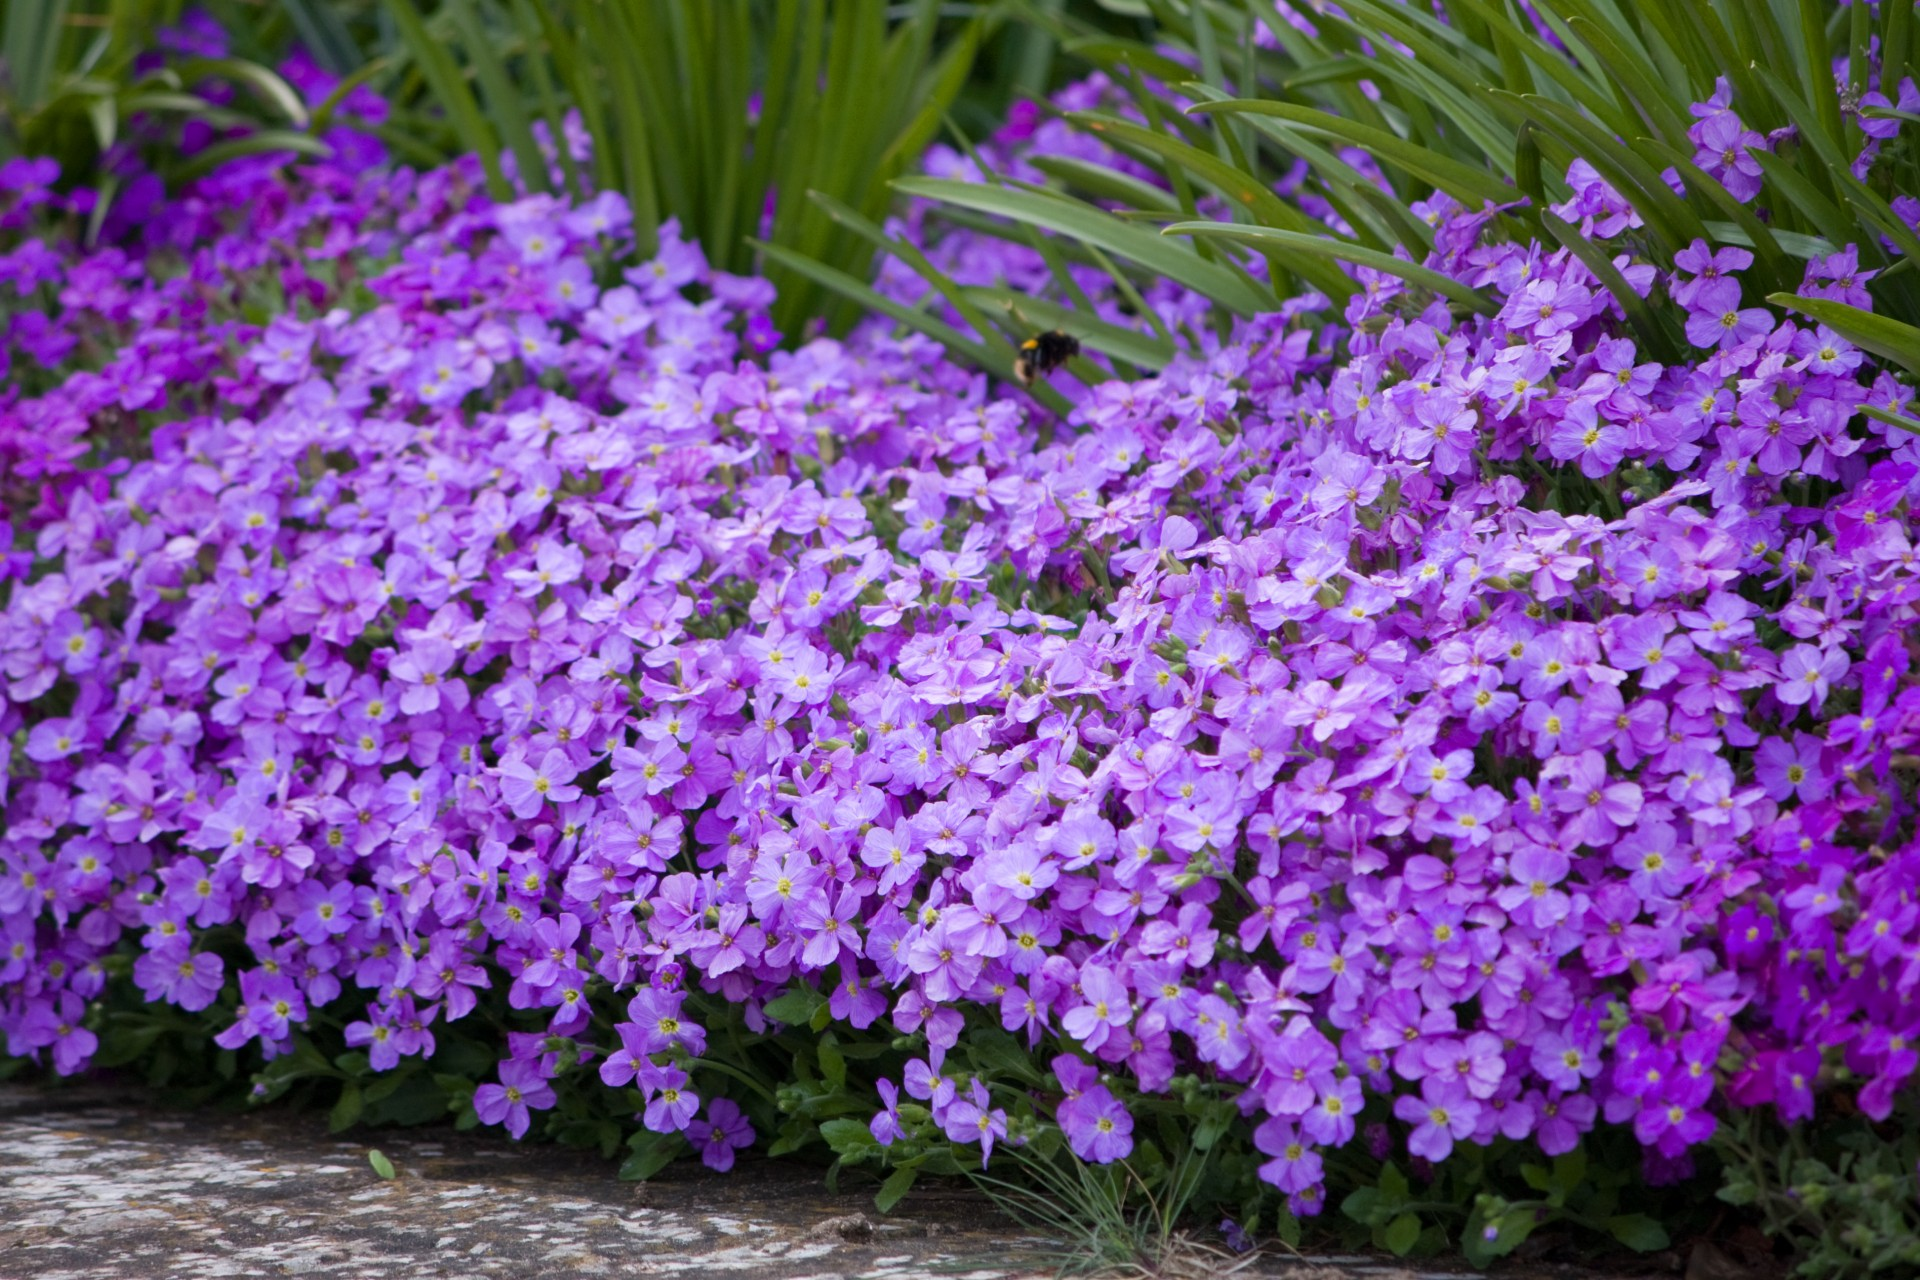 Free Fall Mums Wallpaper Purple Flowers Free Stock Photo Public Domain Pictures